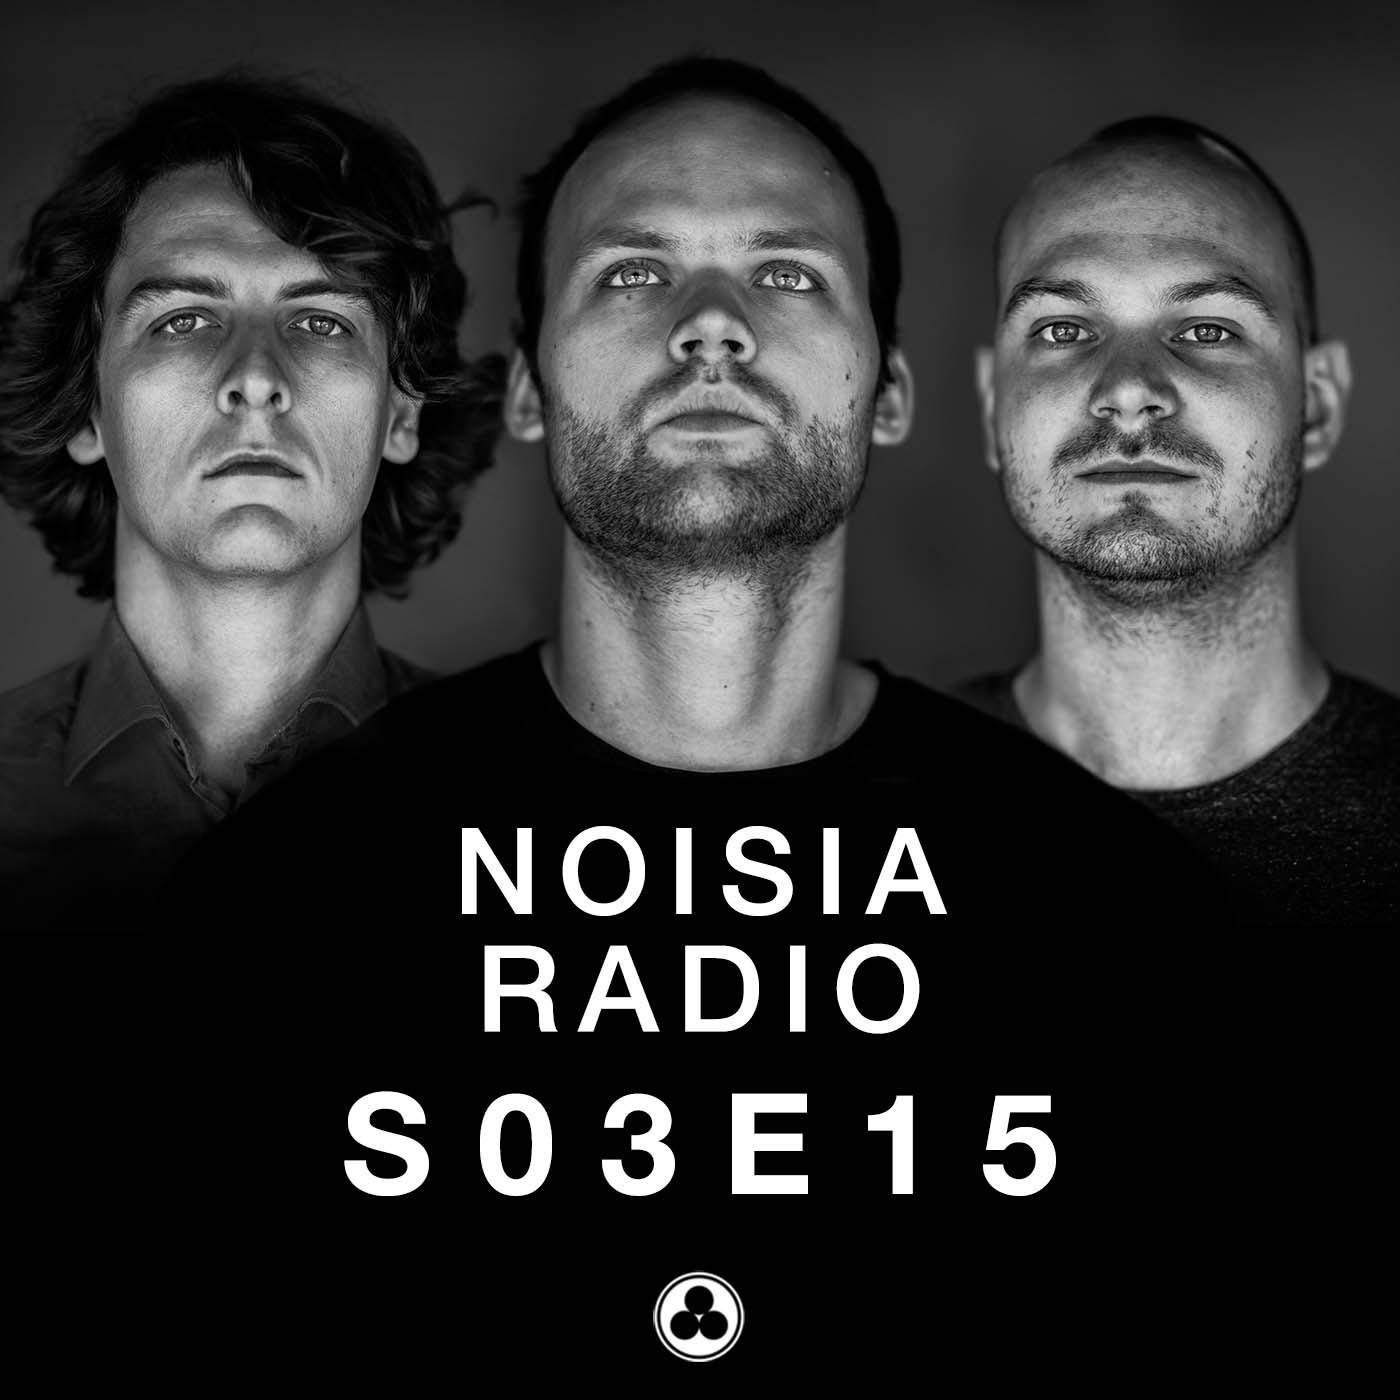 Noisia Radio S03E15